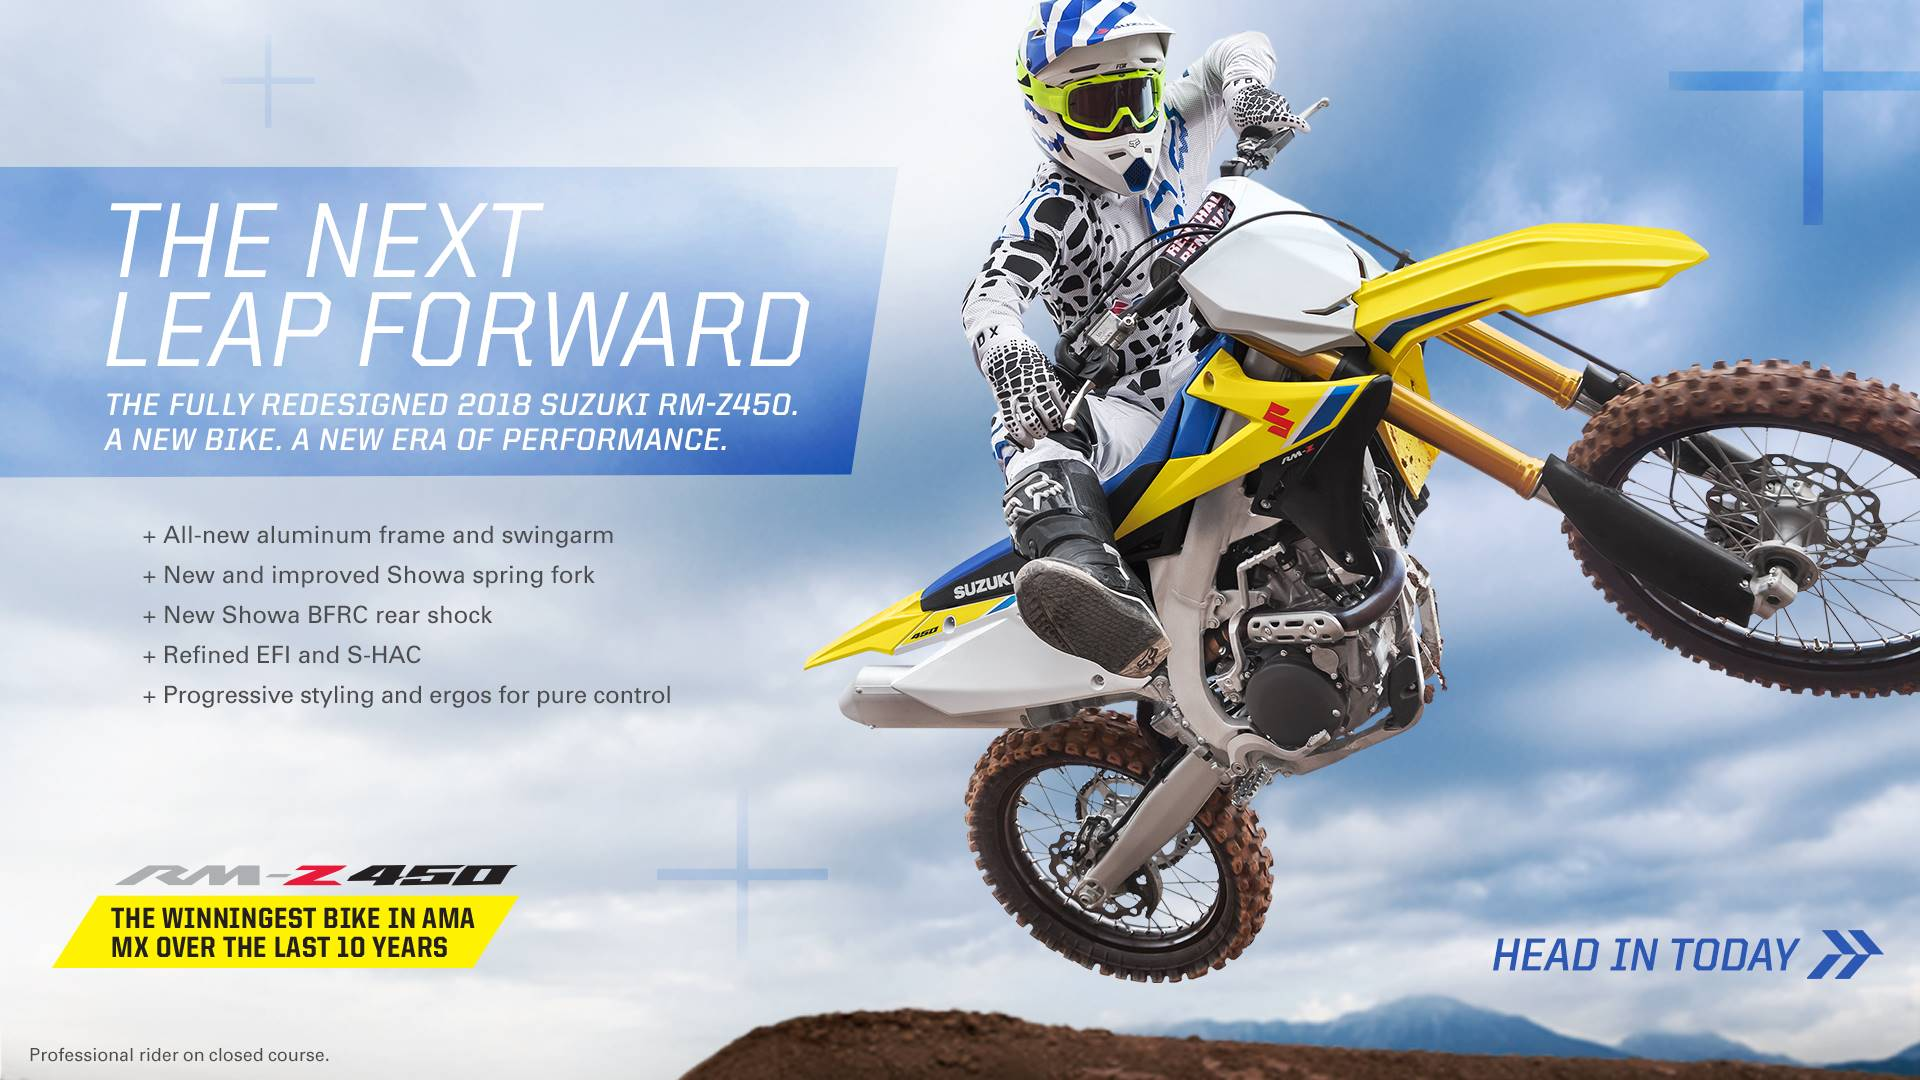 Suzuki Motor of America Inc. Suzuki Fall Suzukifest Motocross and Offroad Motorcycle Financing as Low as 0% APR for 36 Months or Customer Cash Offer